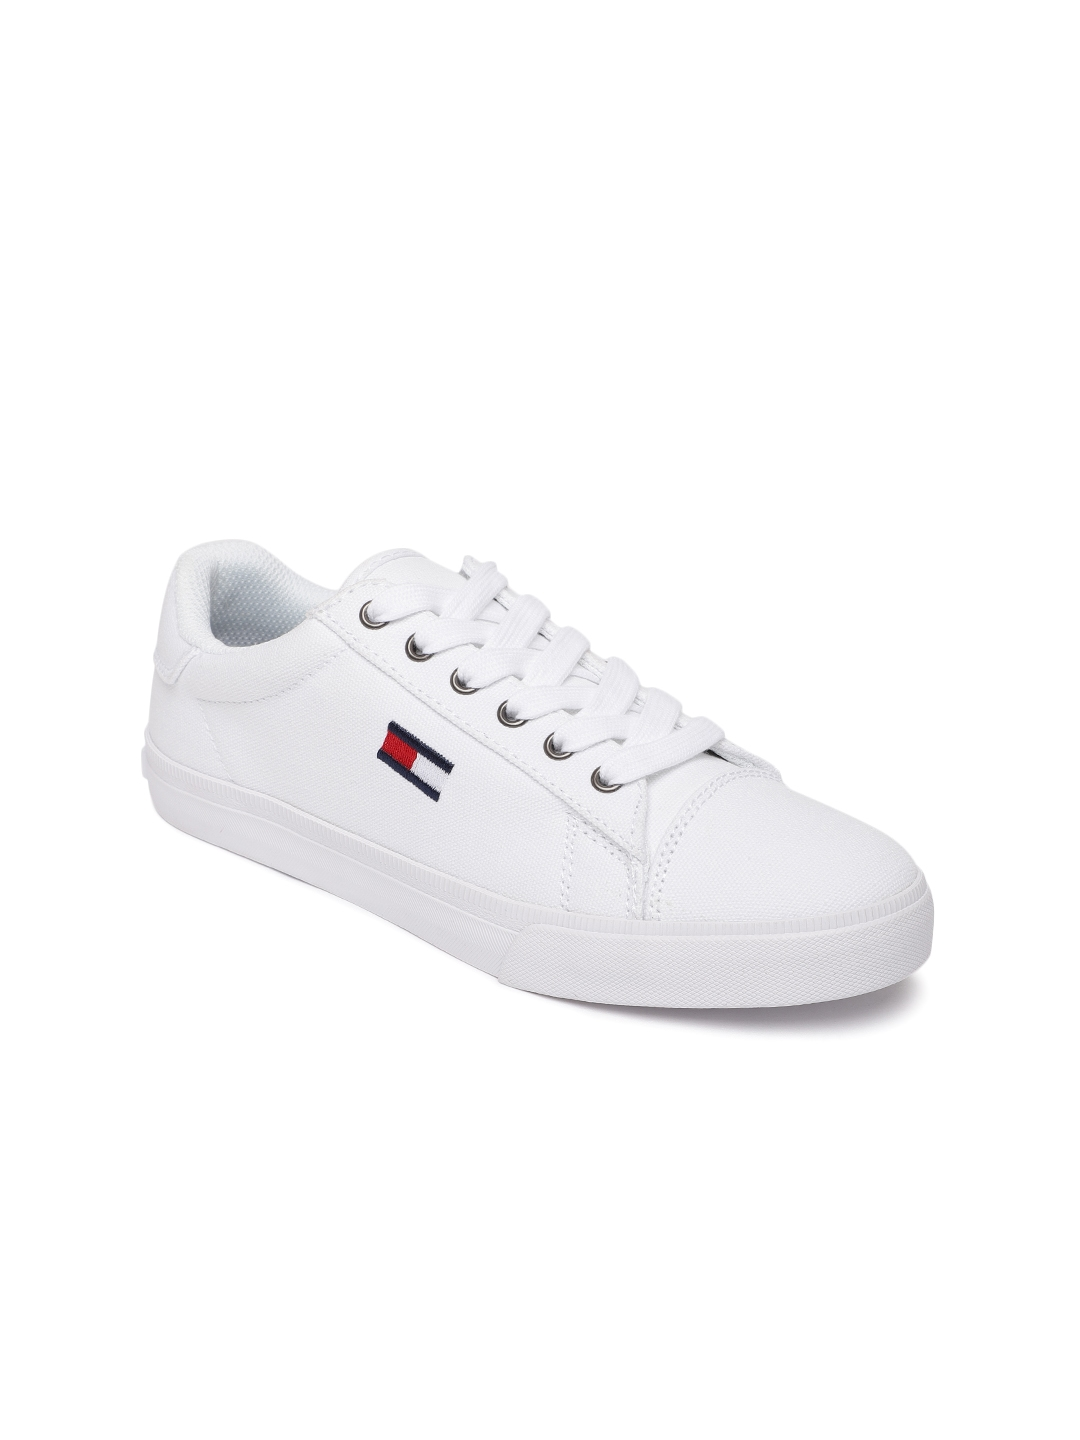 336d51857 Buy Tommy Hilfiger Women White Lava A Sneakers - Casual Shoes for ...